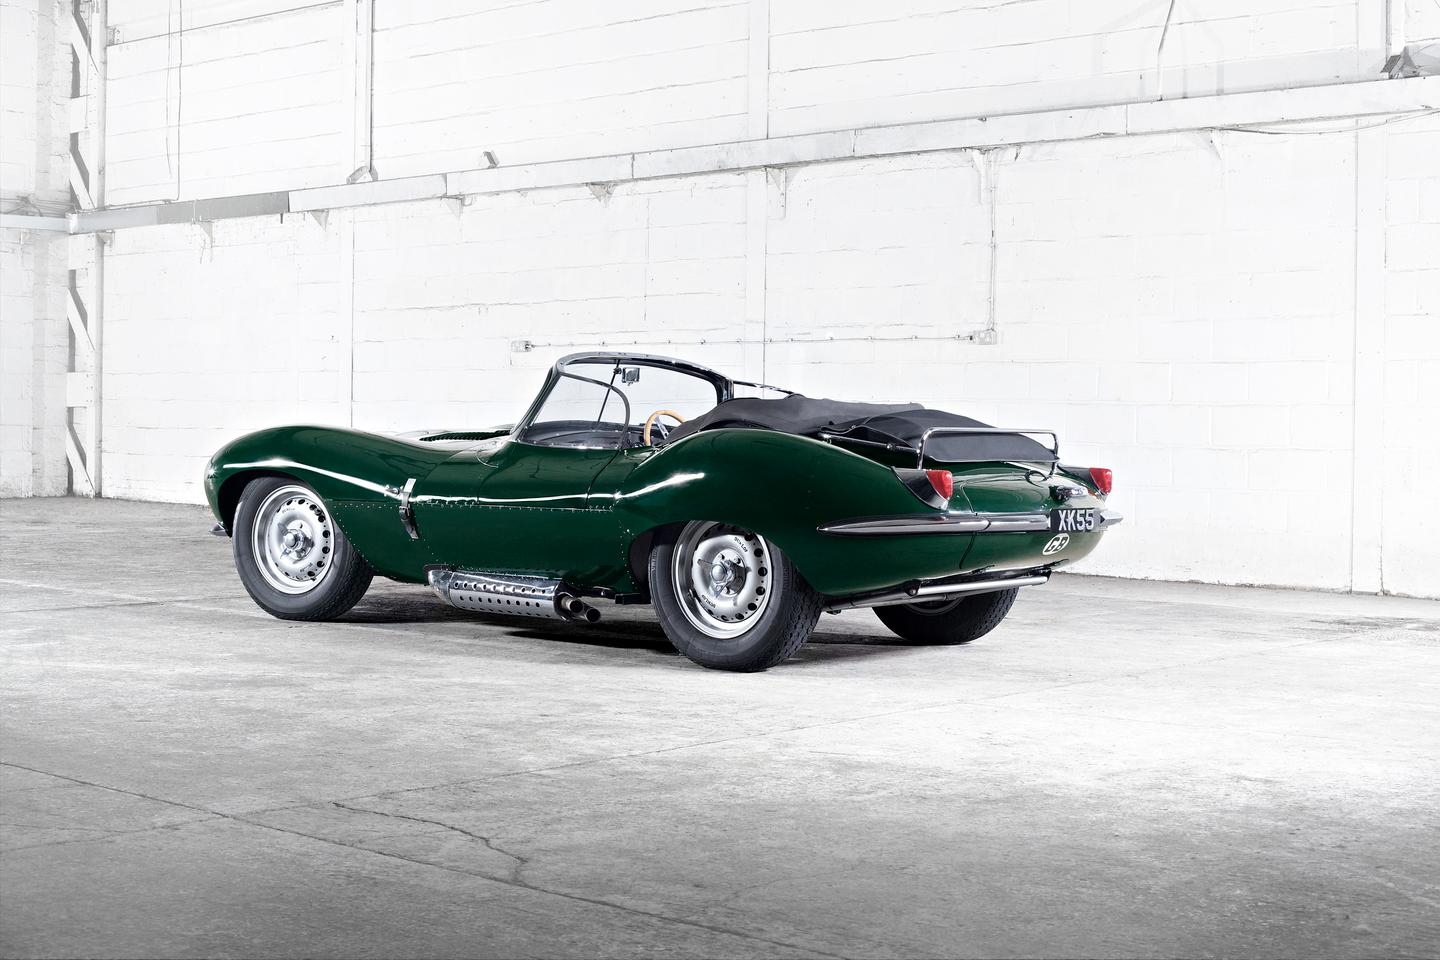 Jaguar Classic, which recently changed its name from Jaguar Heritage, intends to start deliveries of the continuation XKSS models next year